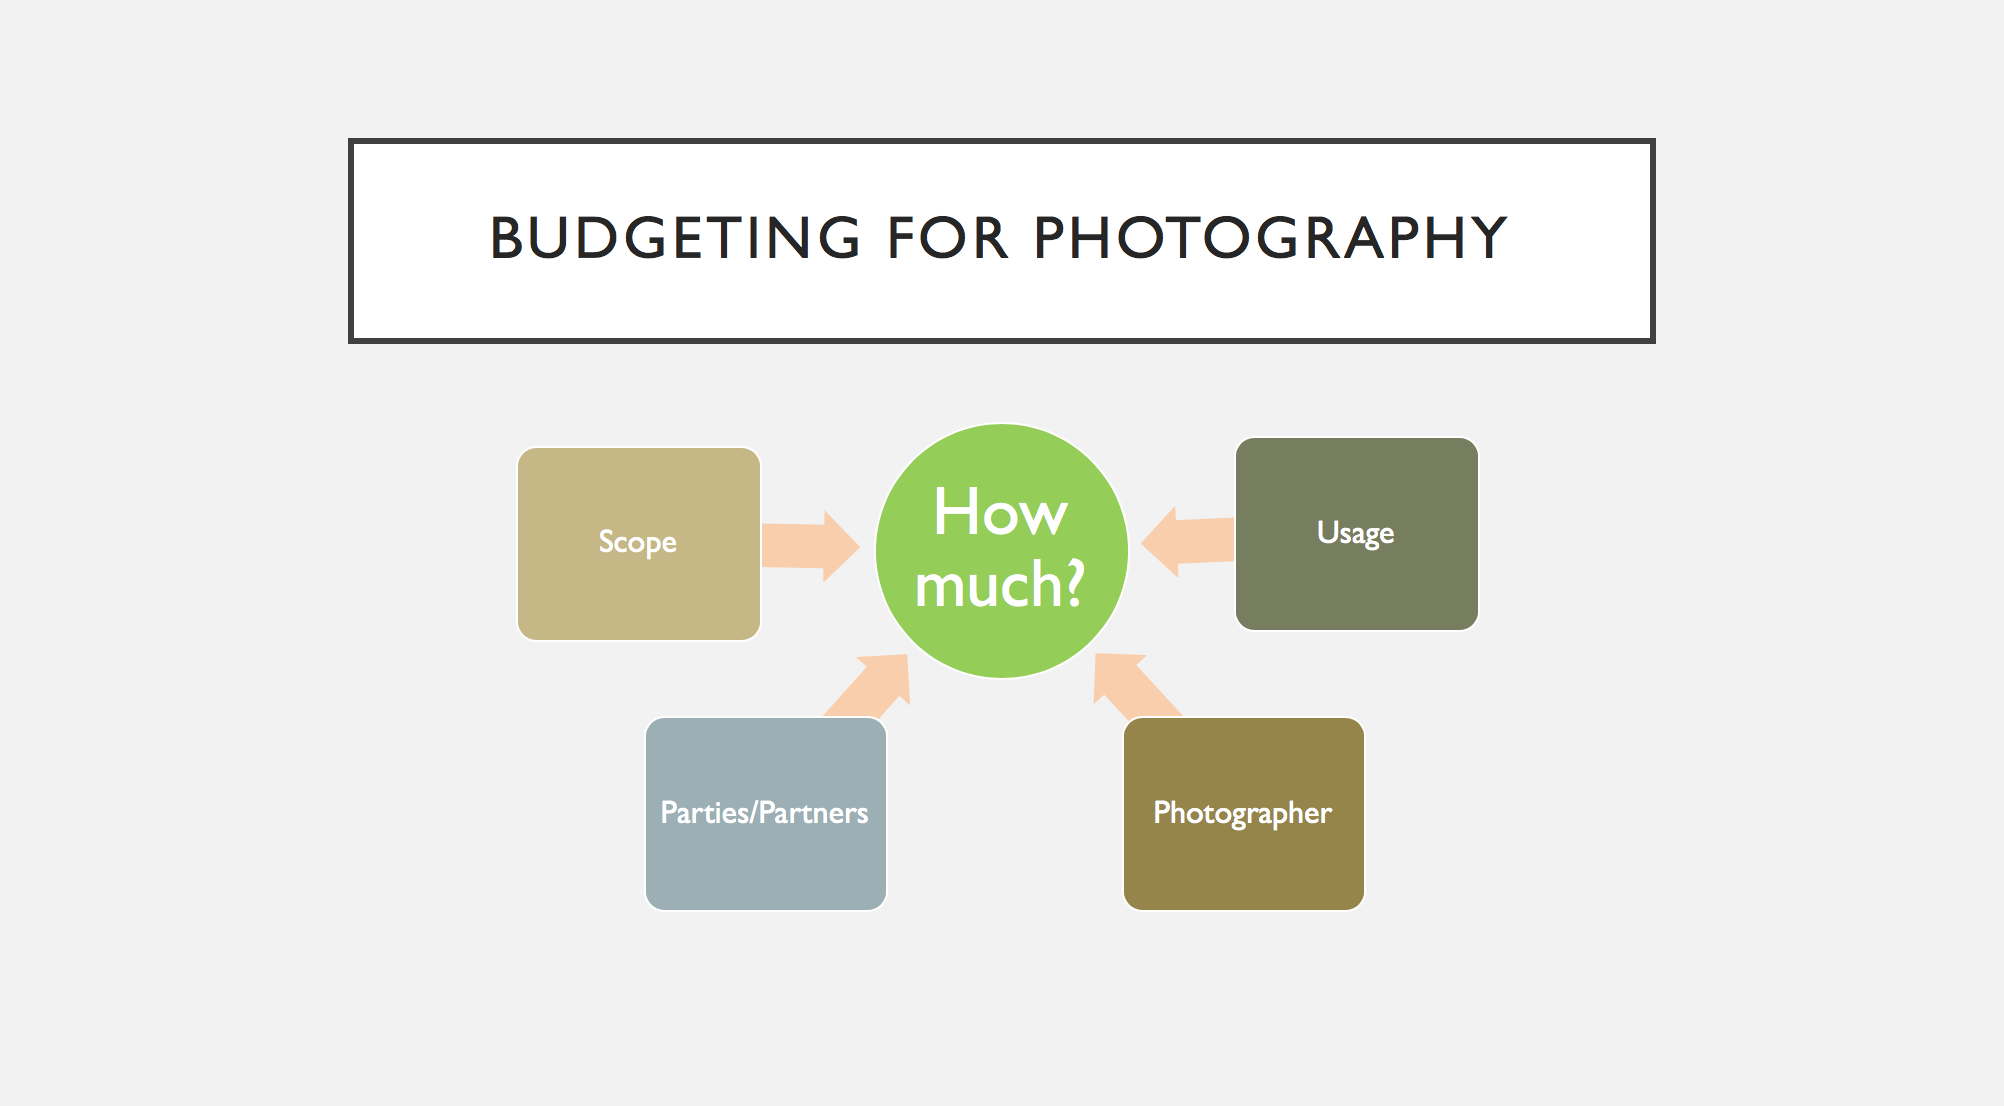 BudgetingForPhotography.png